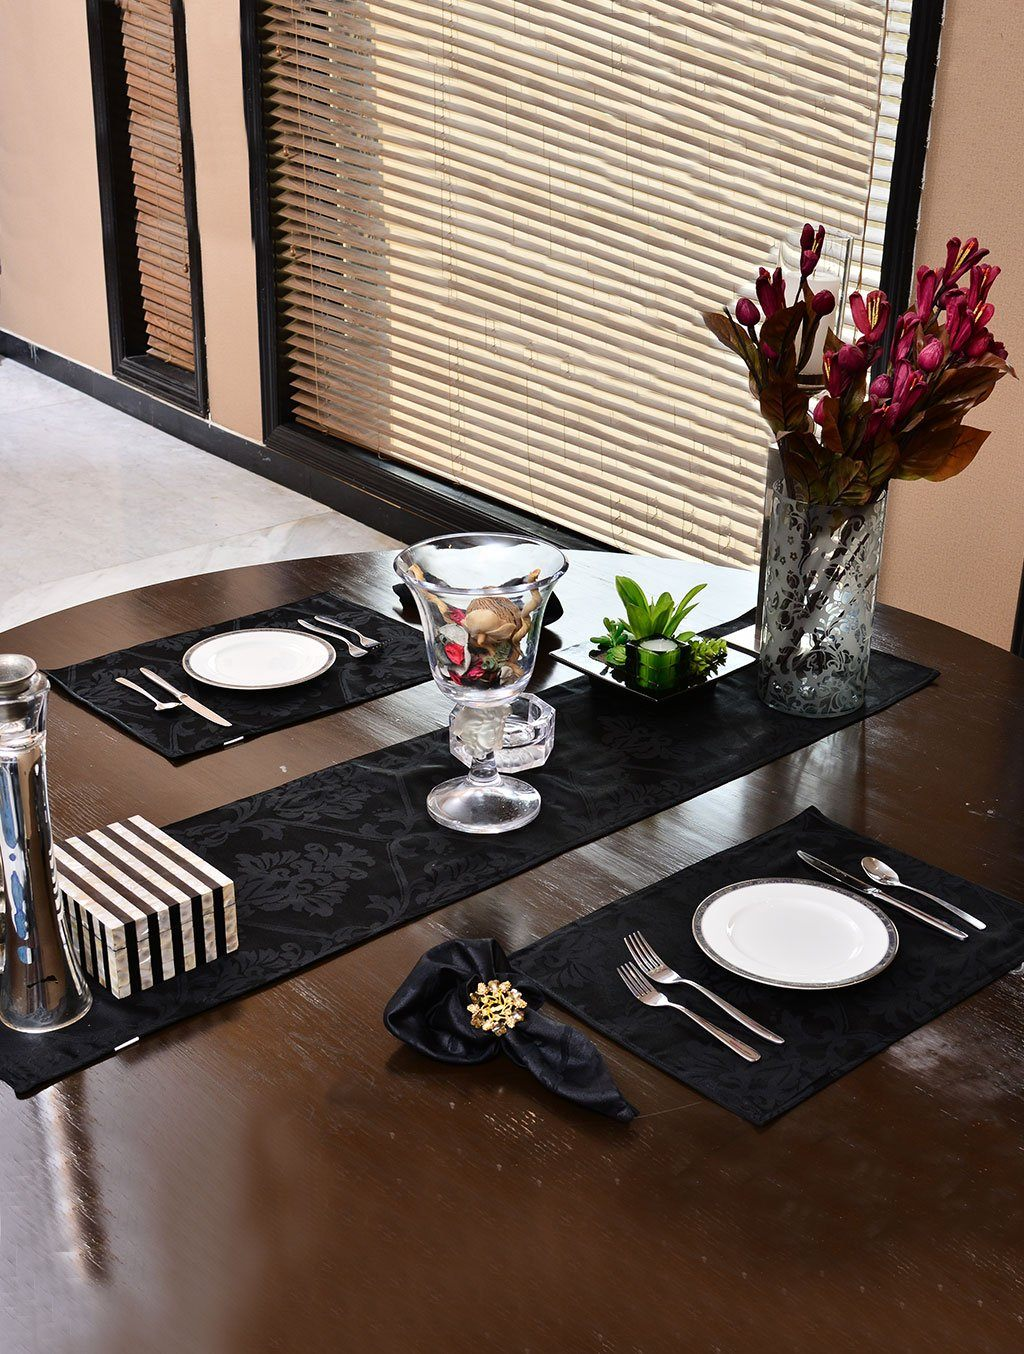 Kitchen Linen Jacquard Black Kitchen Accessories HOMKITLIN Table Runner